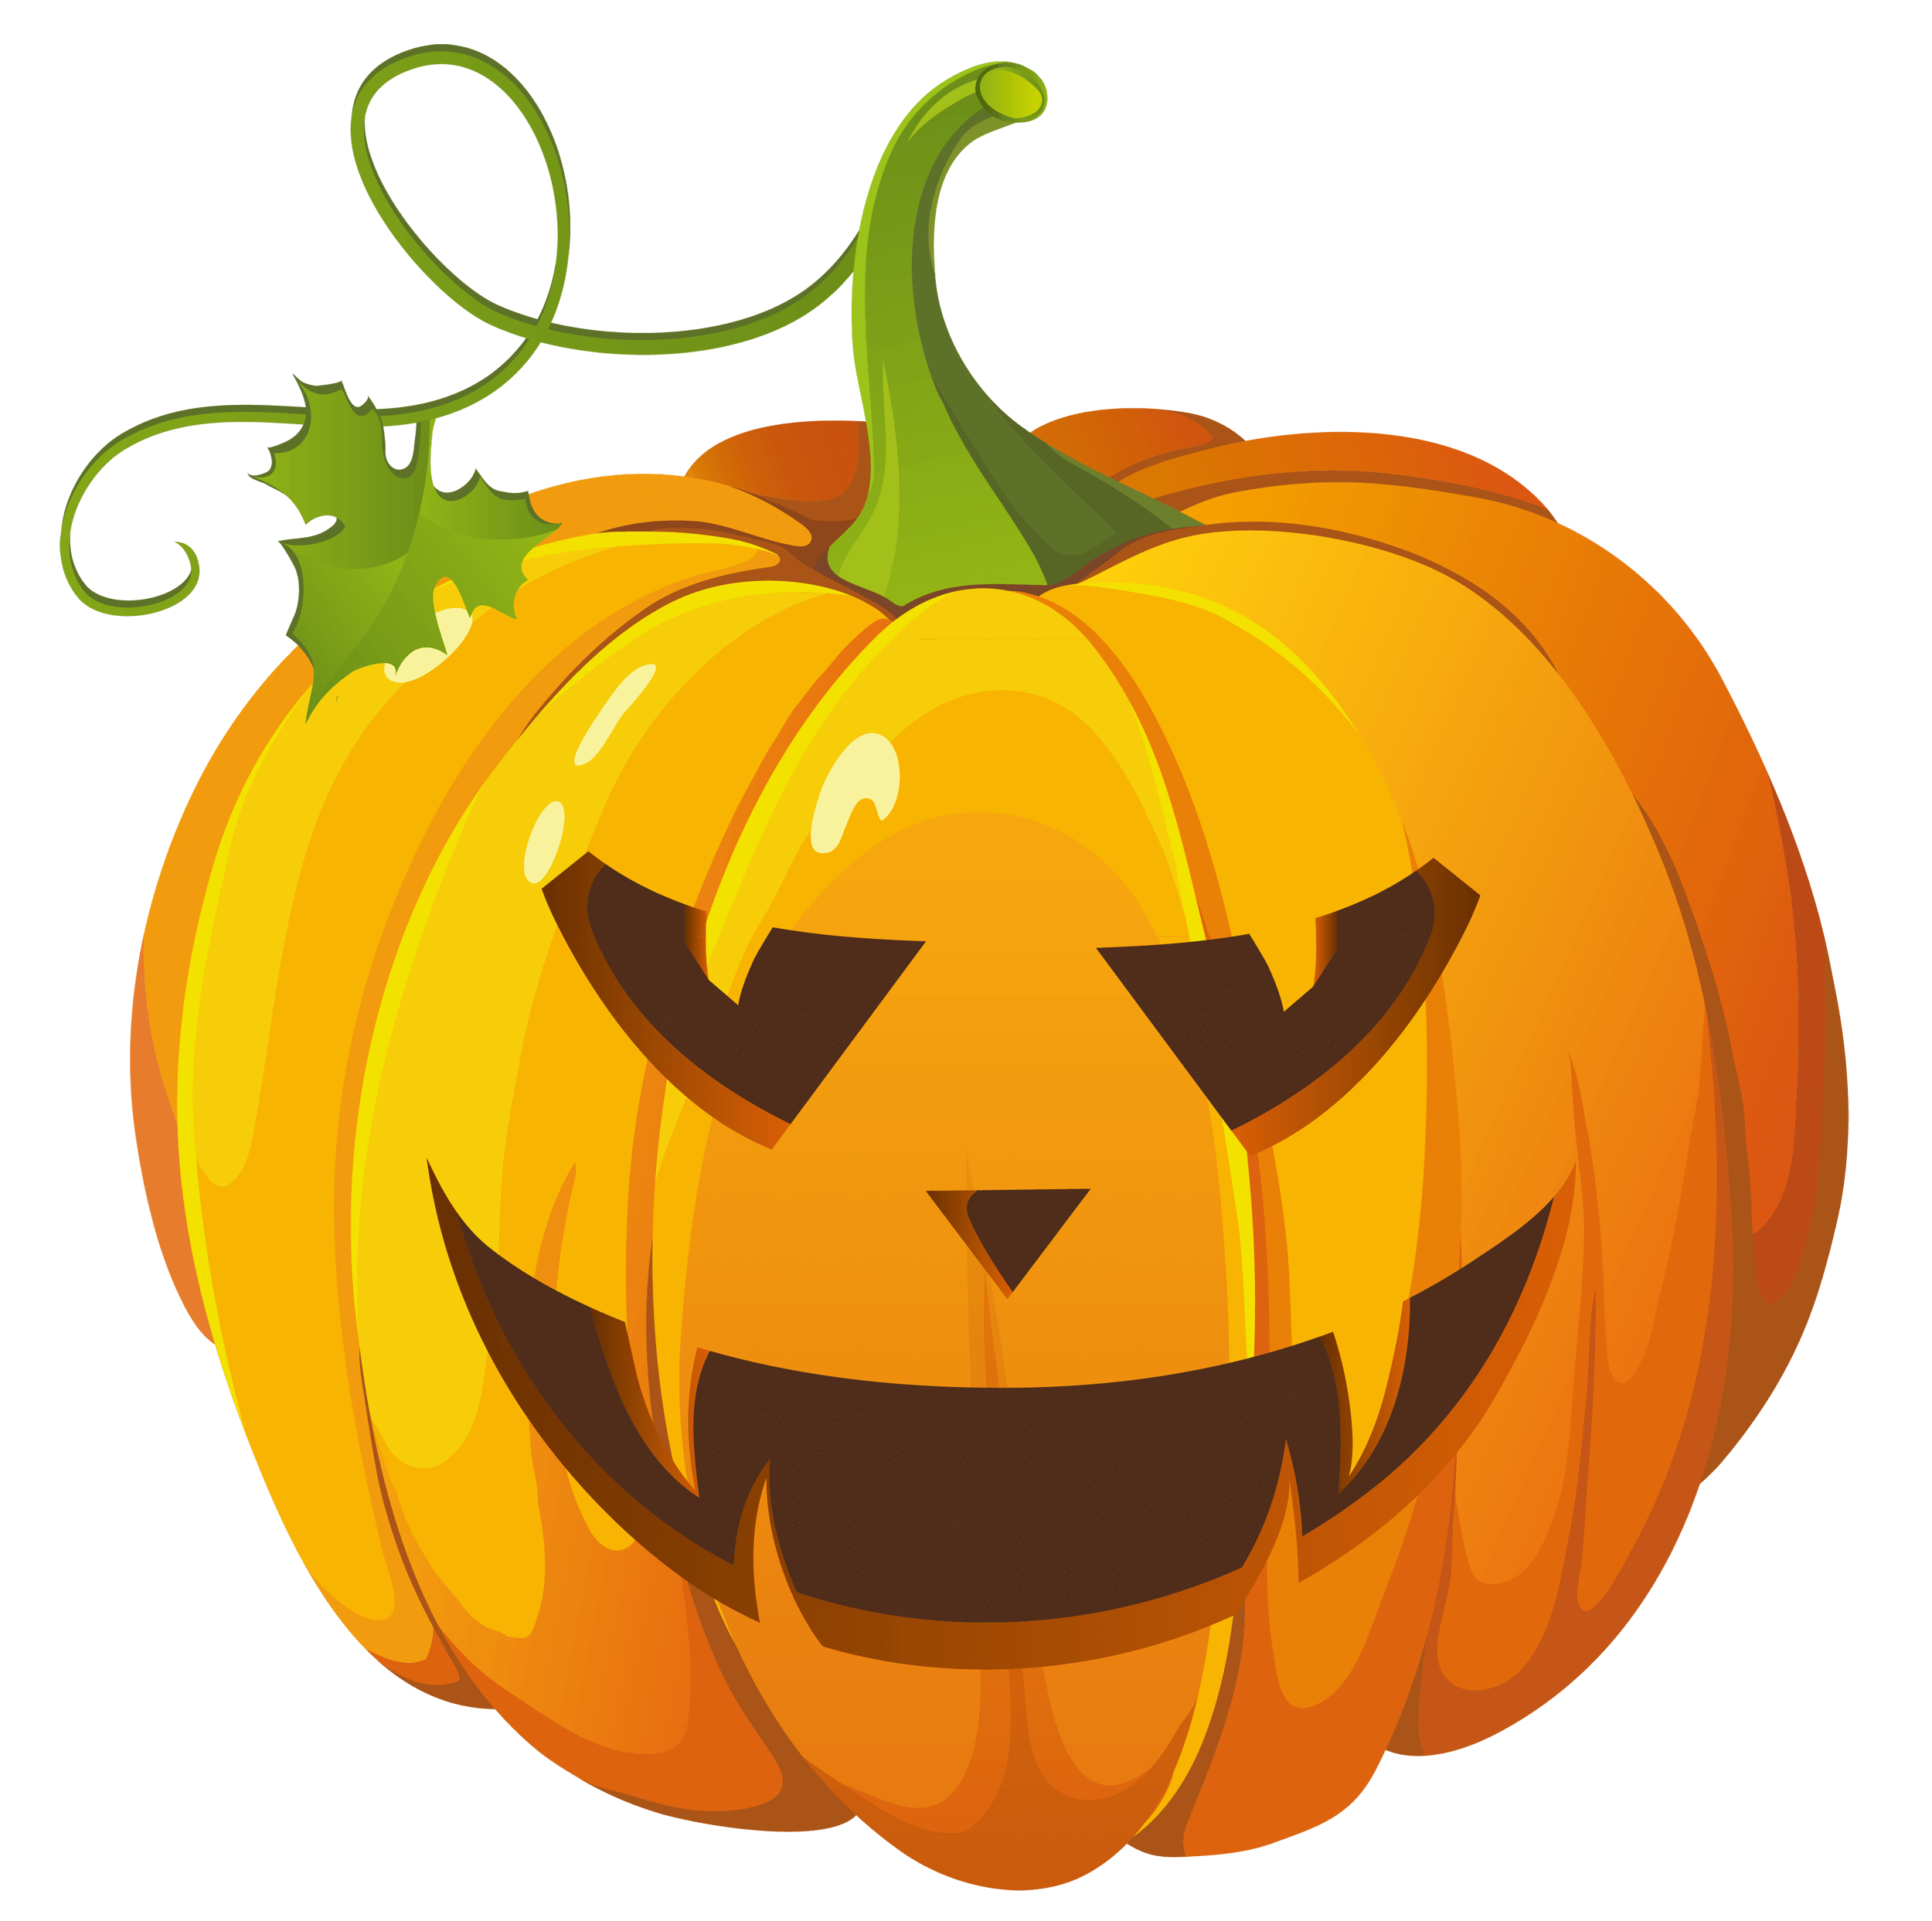 Halloween png images. Pumpkin transparent stickpng download